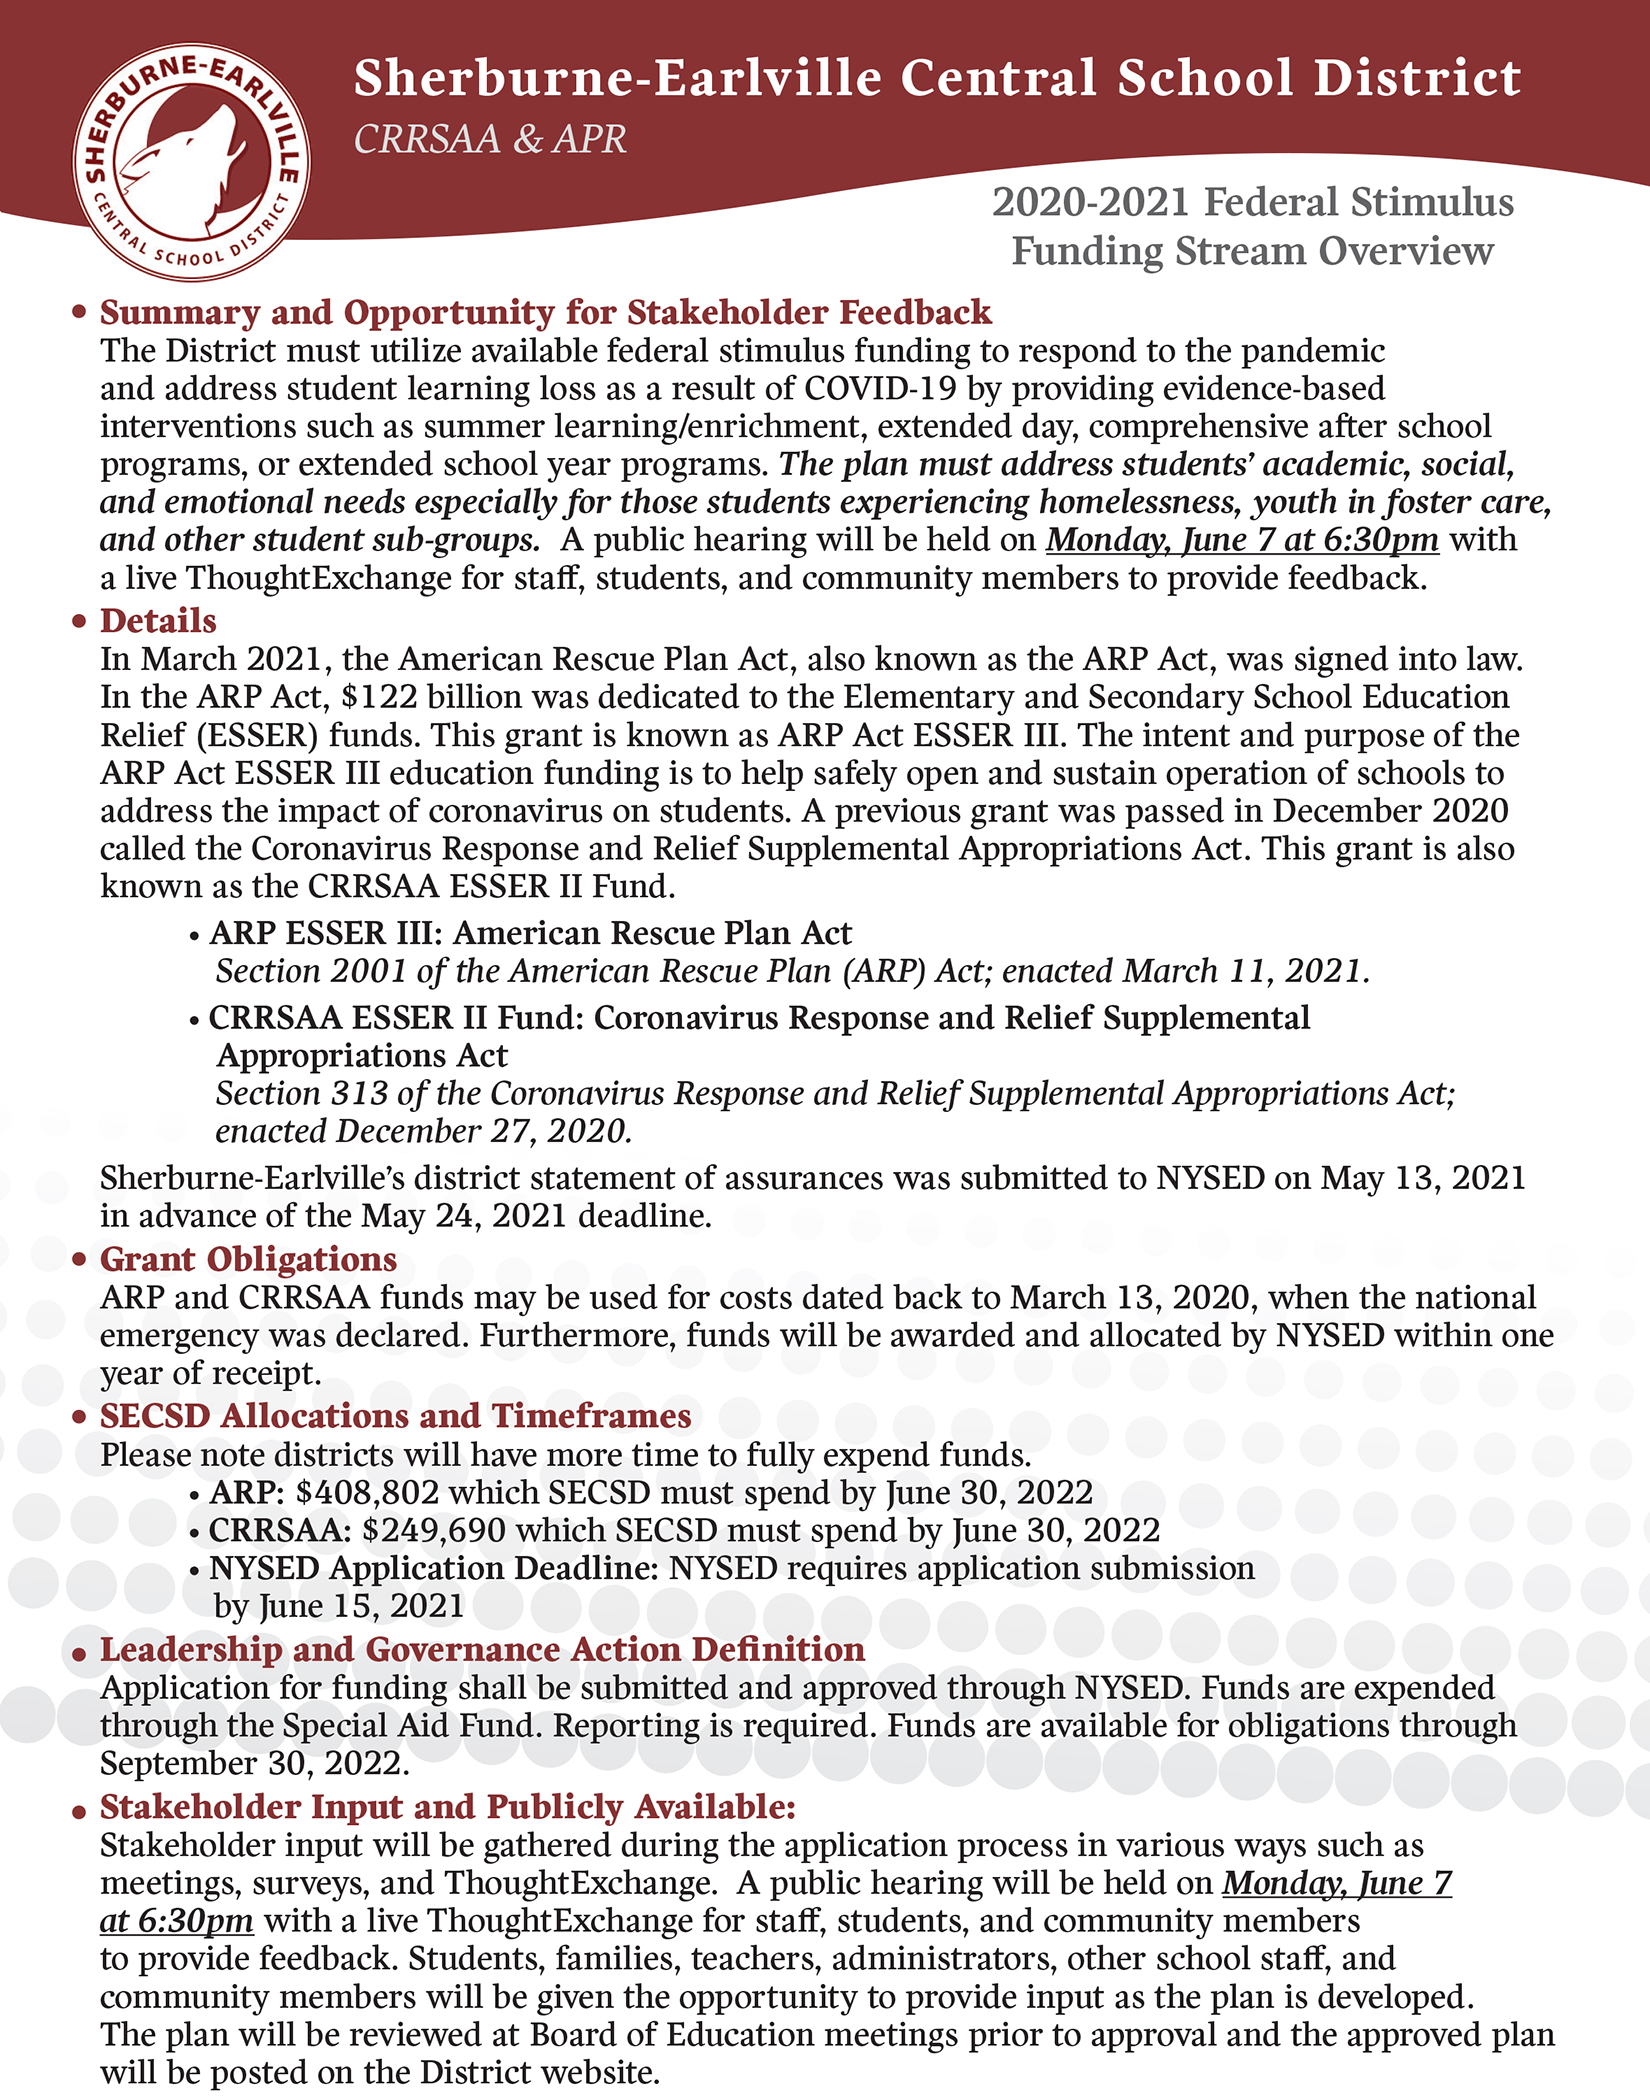 Federal Stimulus Overview Page 1